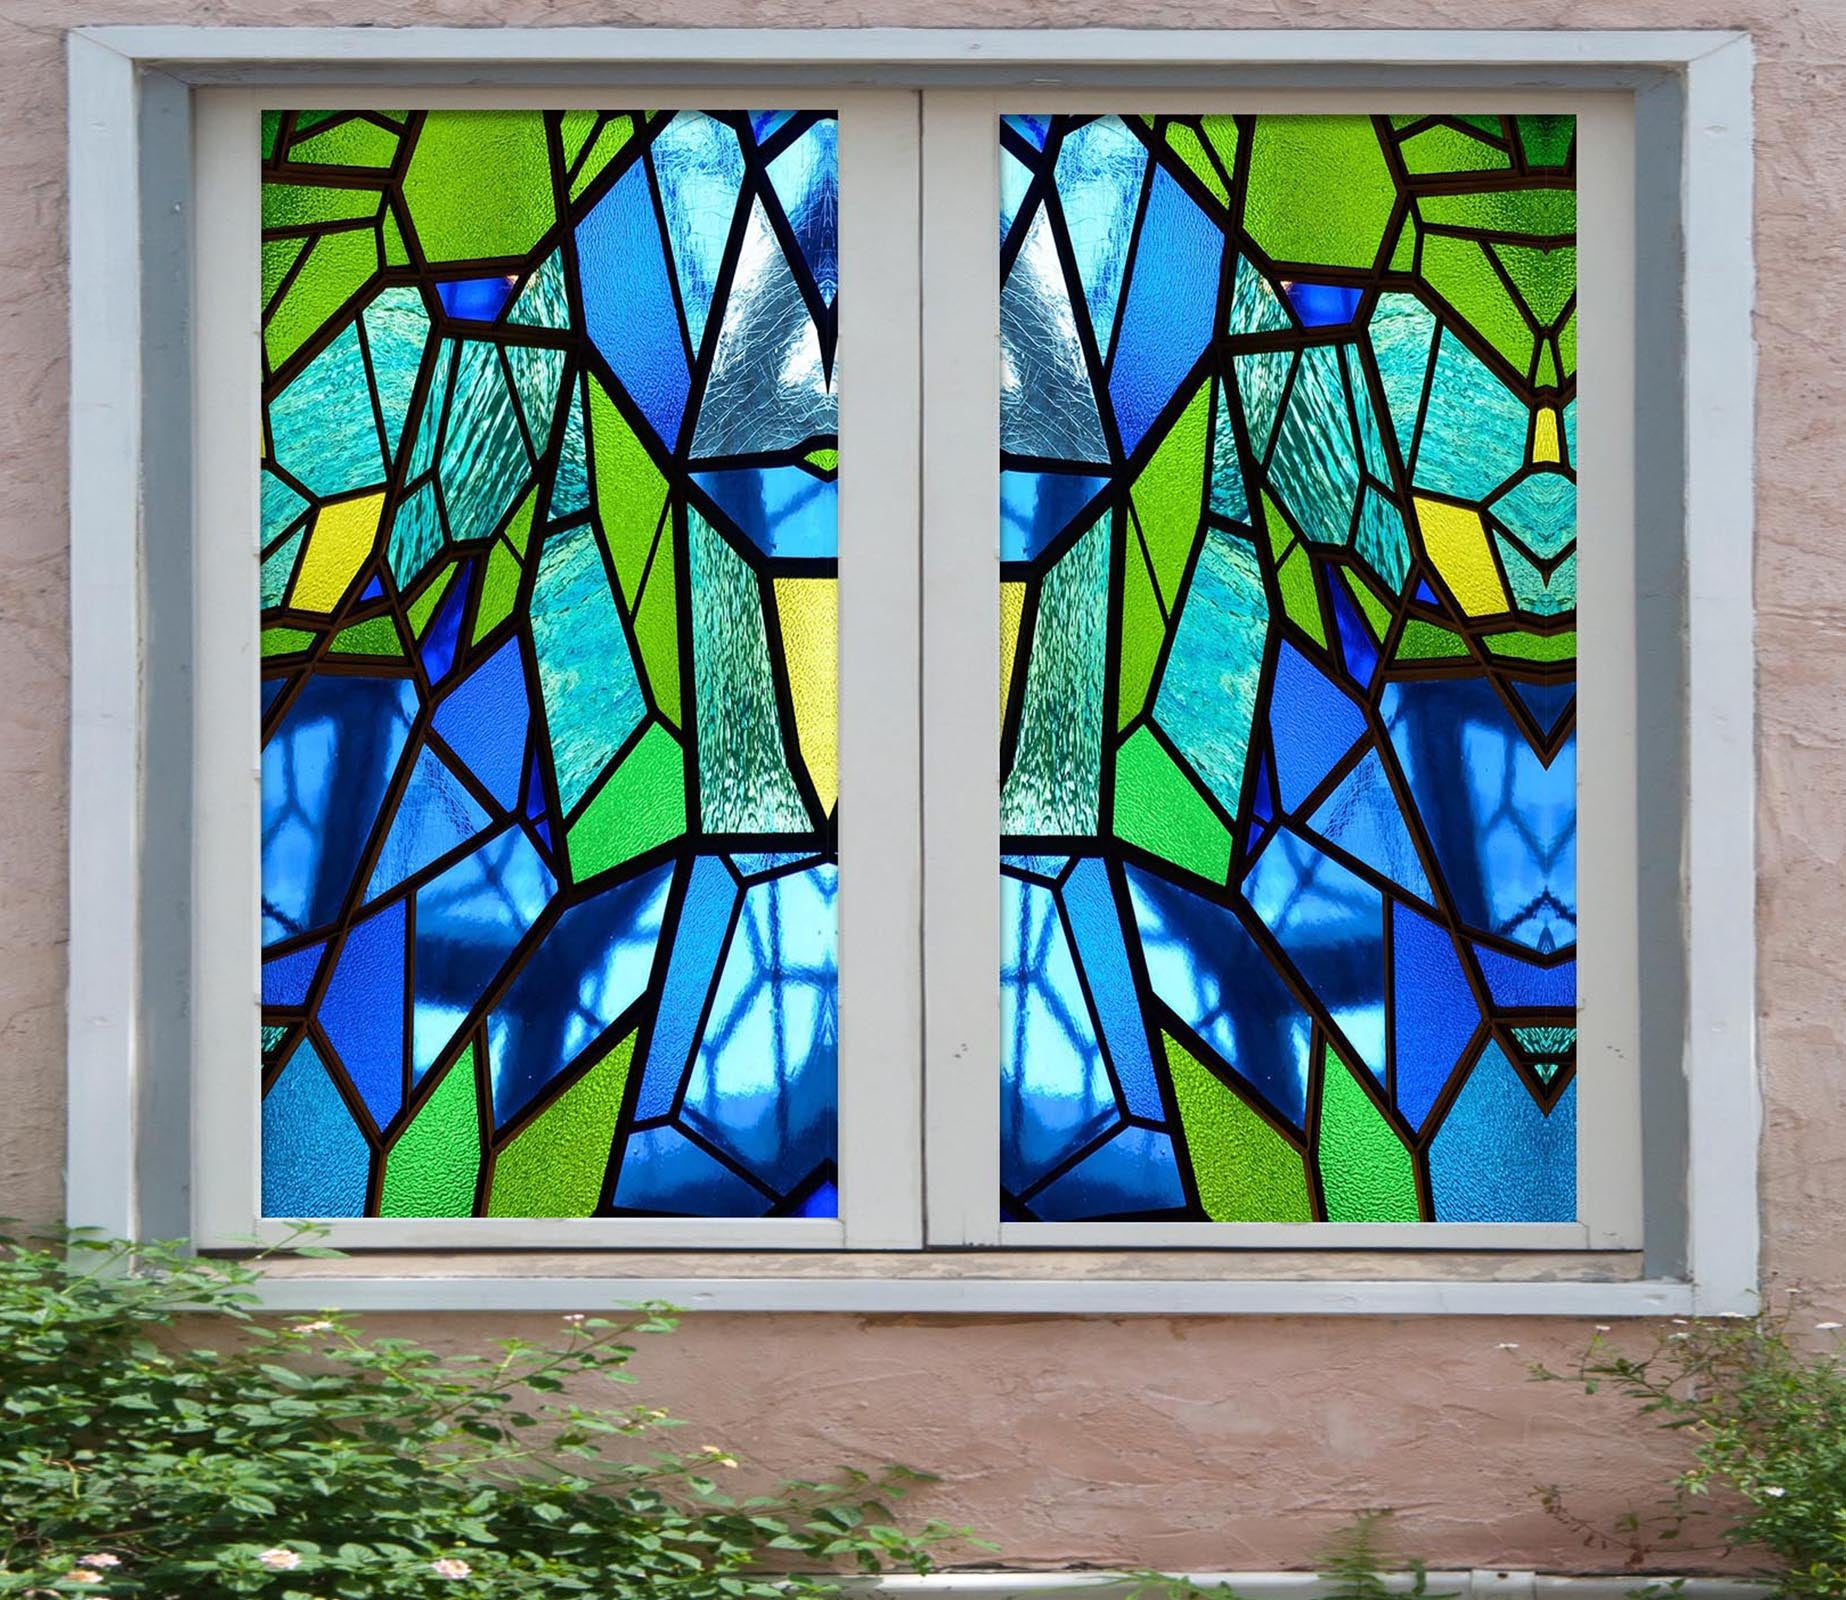 Details about  /3D Religious Baby D22 Window Film Print Sticker Cling Stained Glass UV Block Amy